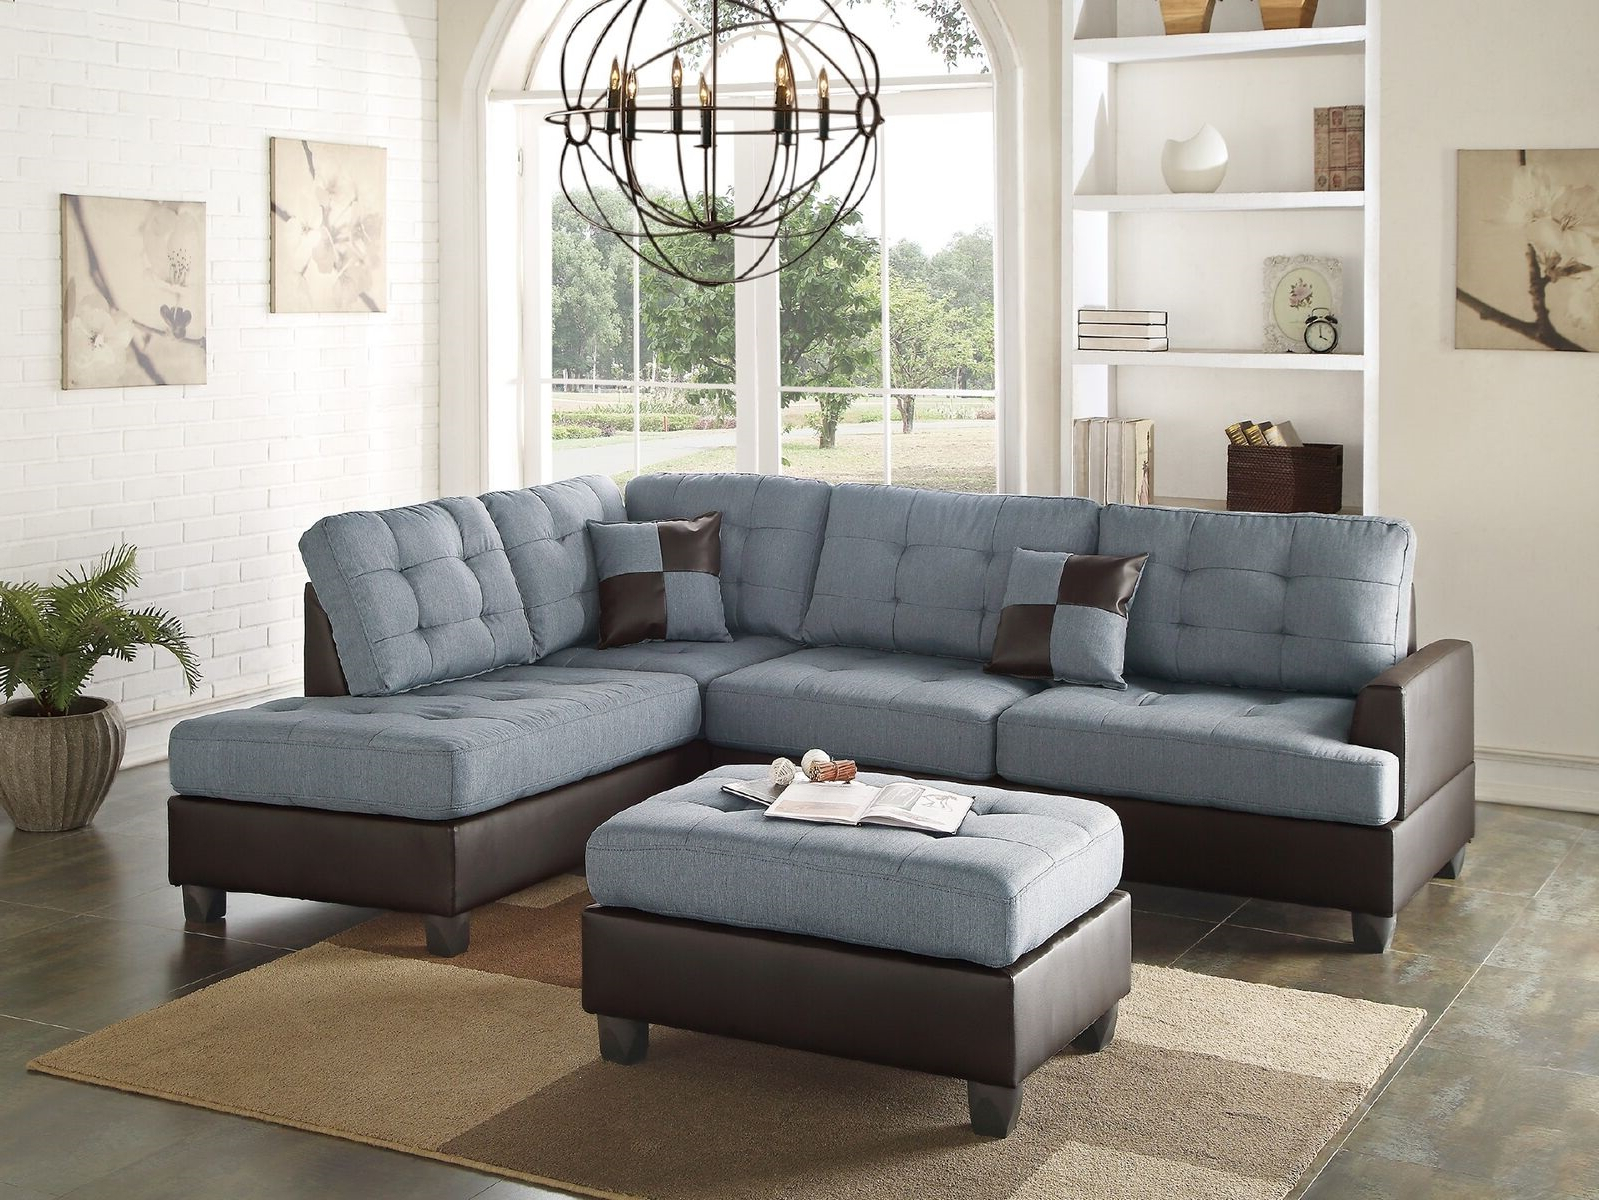 Preferred Mathew Sectional Sofa Set Contemporary Grey Linen Like With Regard To 4Pc Crowningshield Contemporary Chaise Sectional Sofas (View 1 of 25)